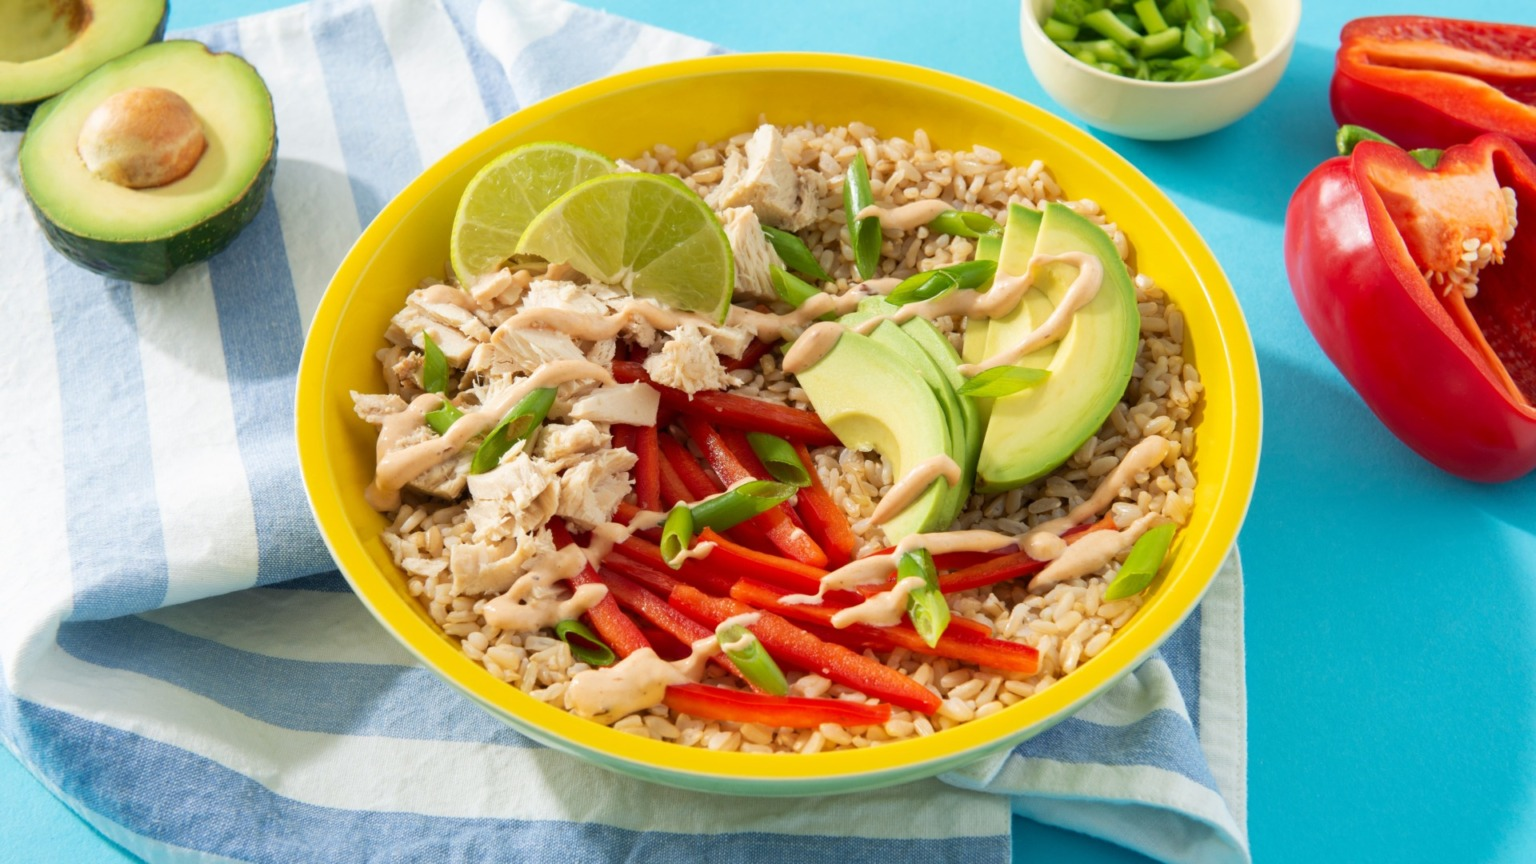 Spicy Chipotle Tuna on Rice